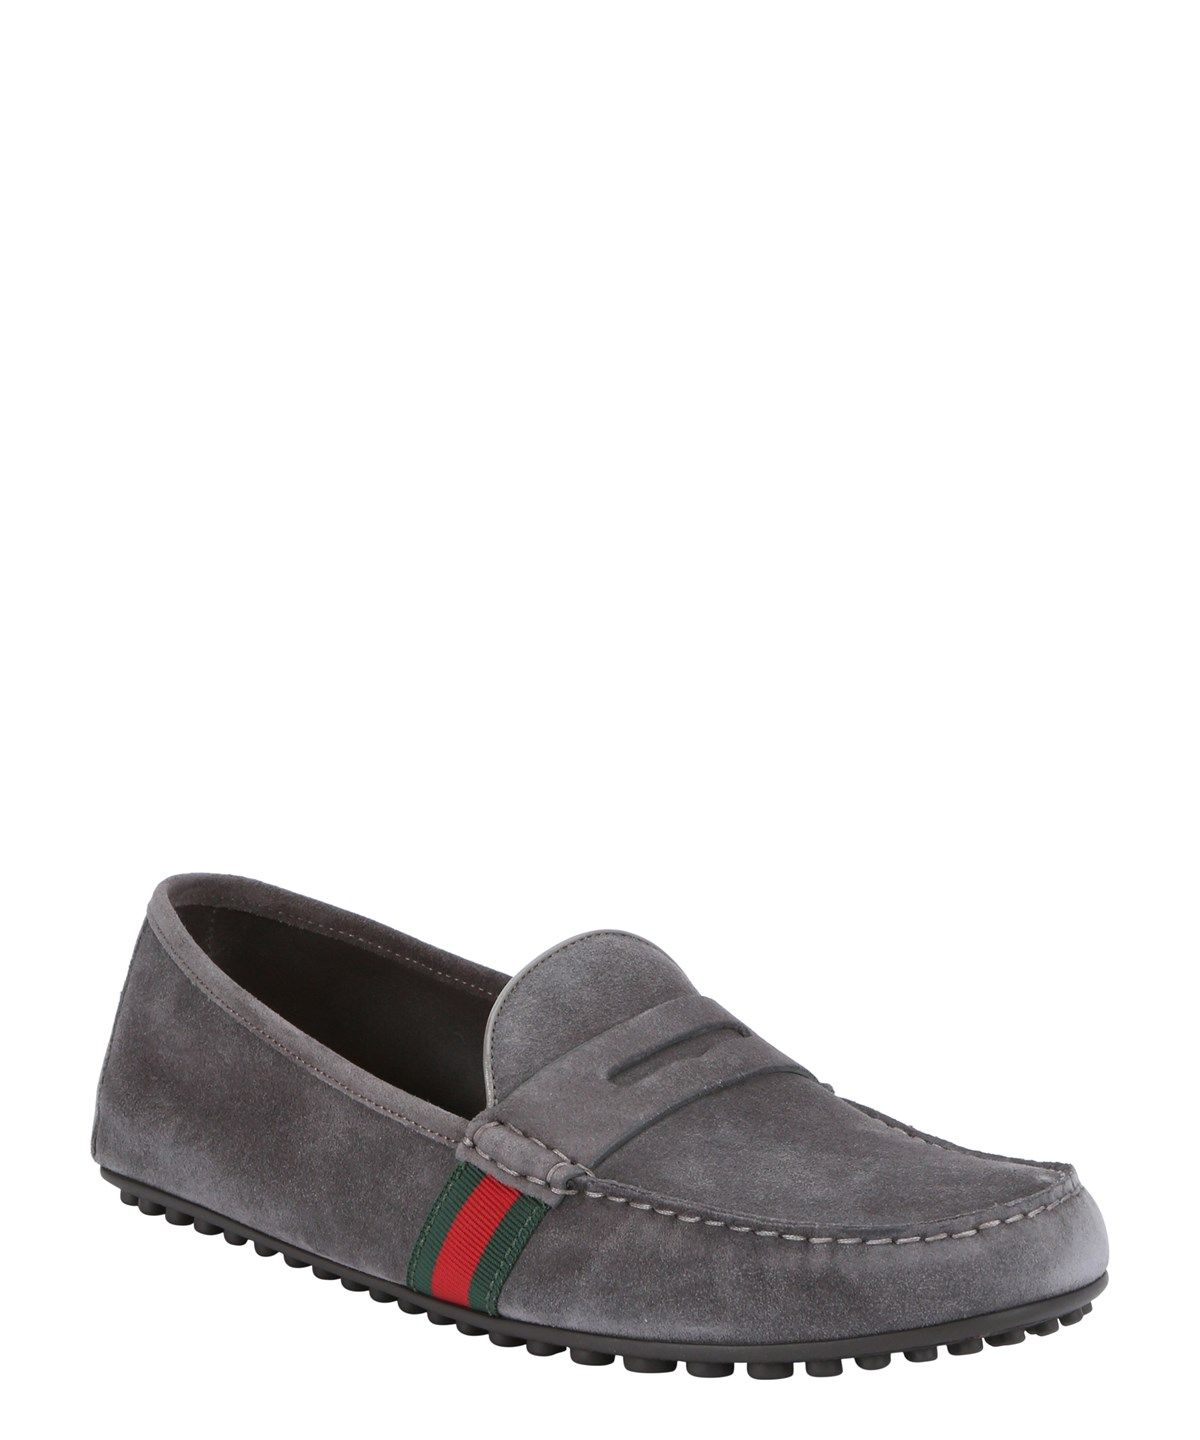 4a78adfff2b GUCCI Grey Suede Web Stripe Driving Loafers .  gucci  shoes  loafers ...